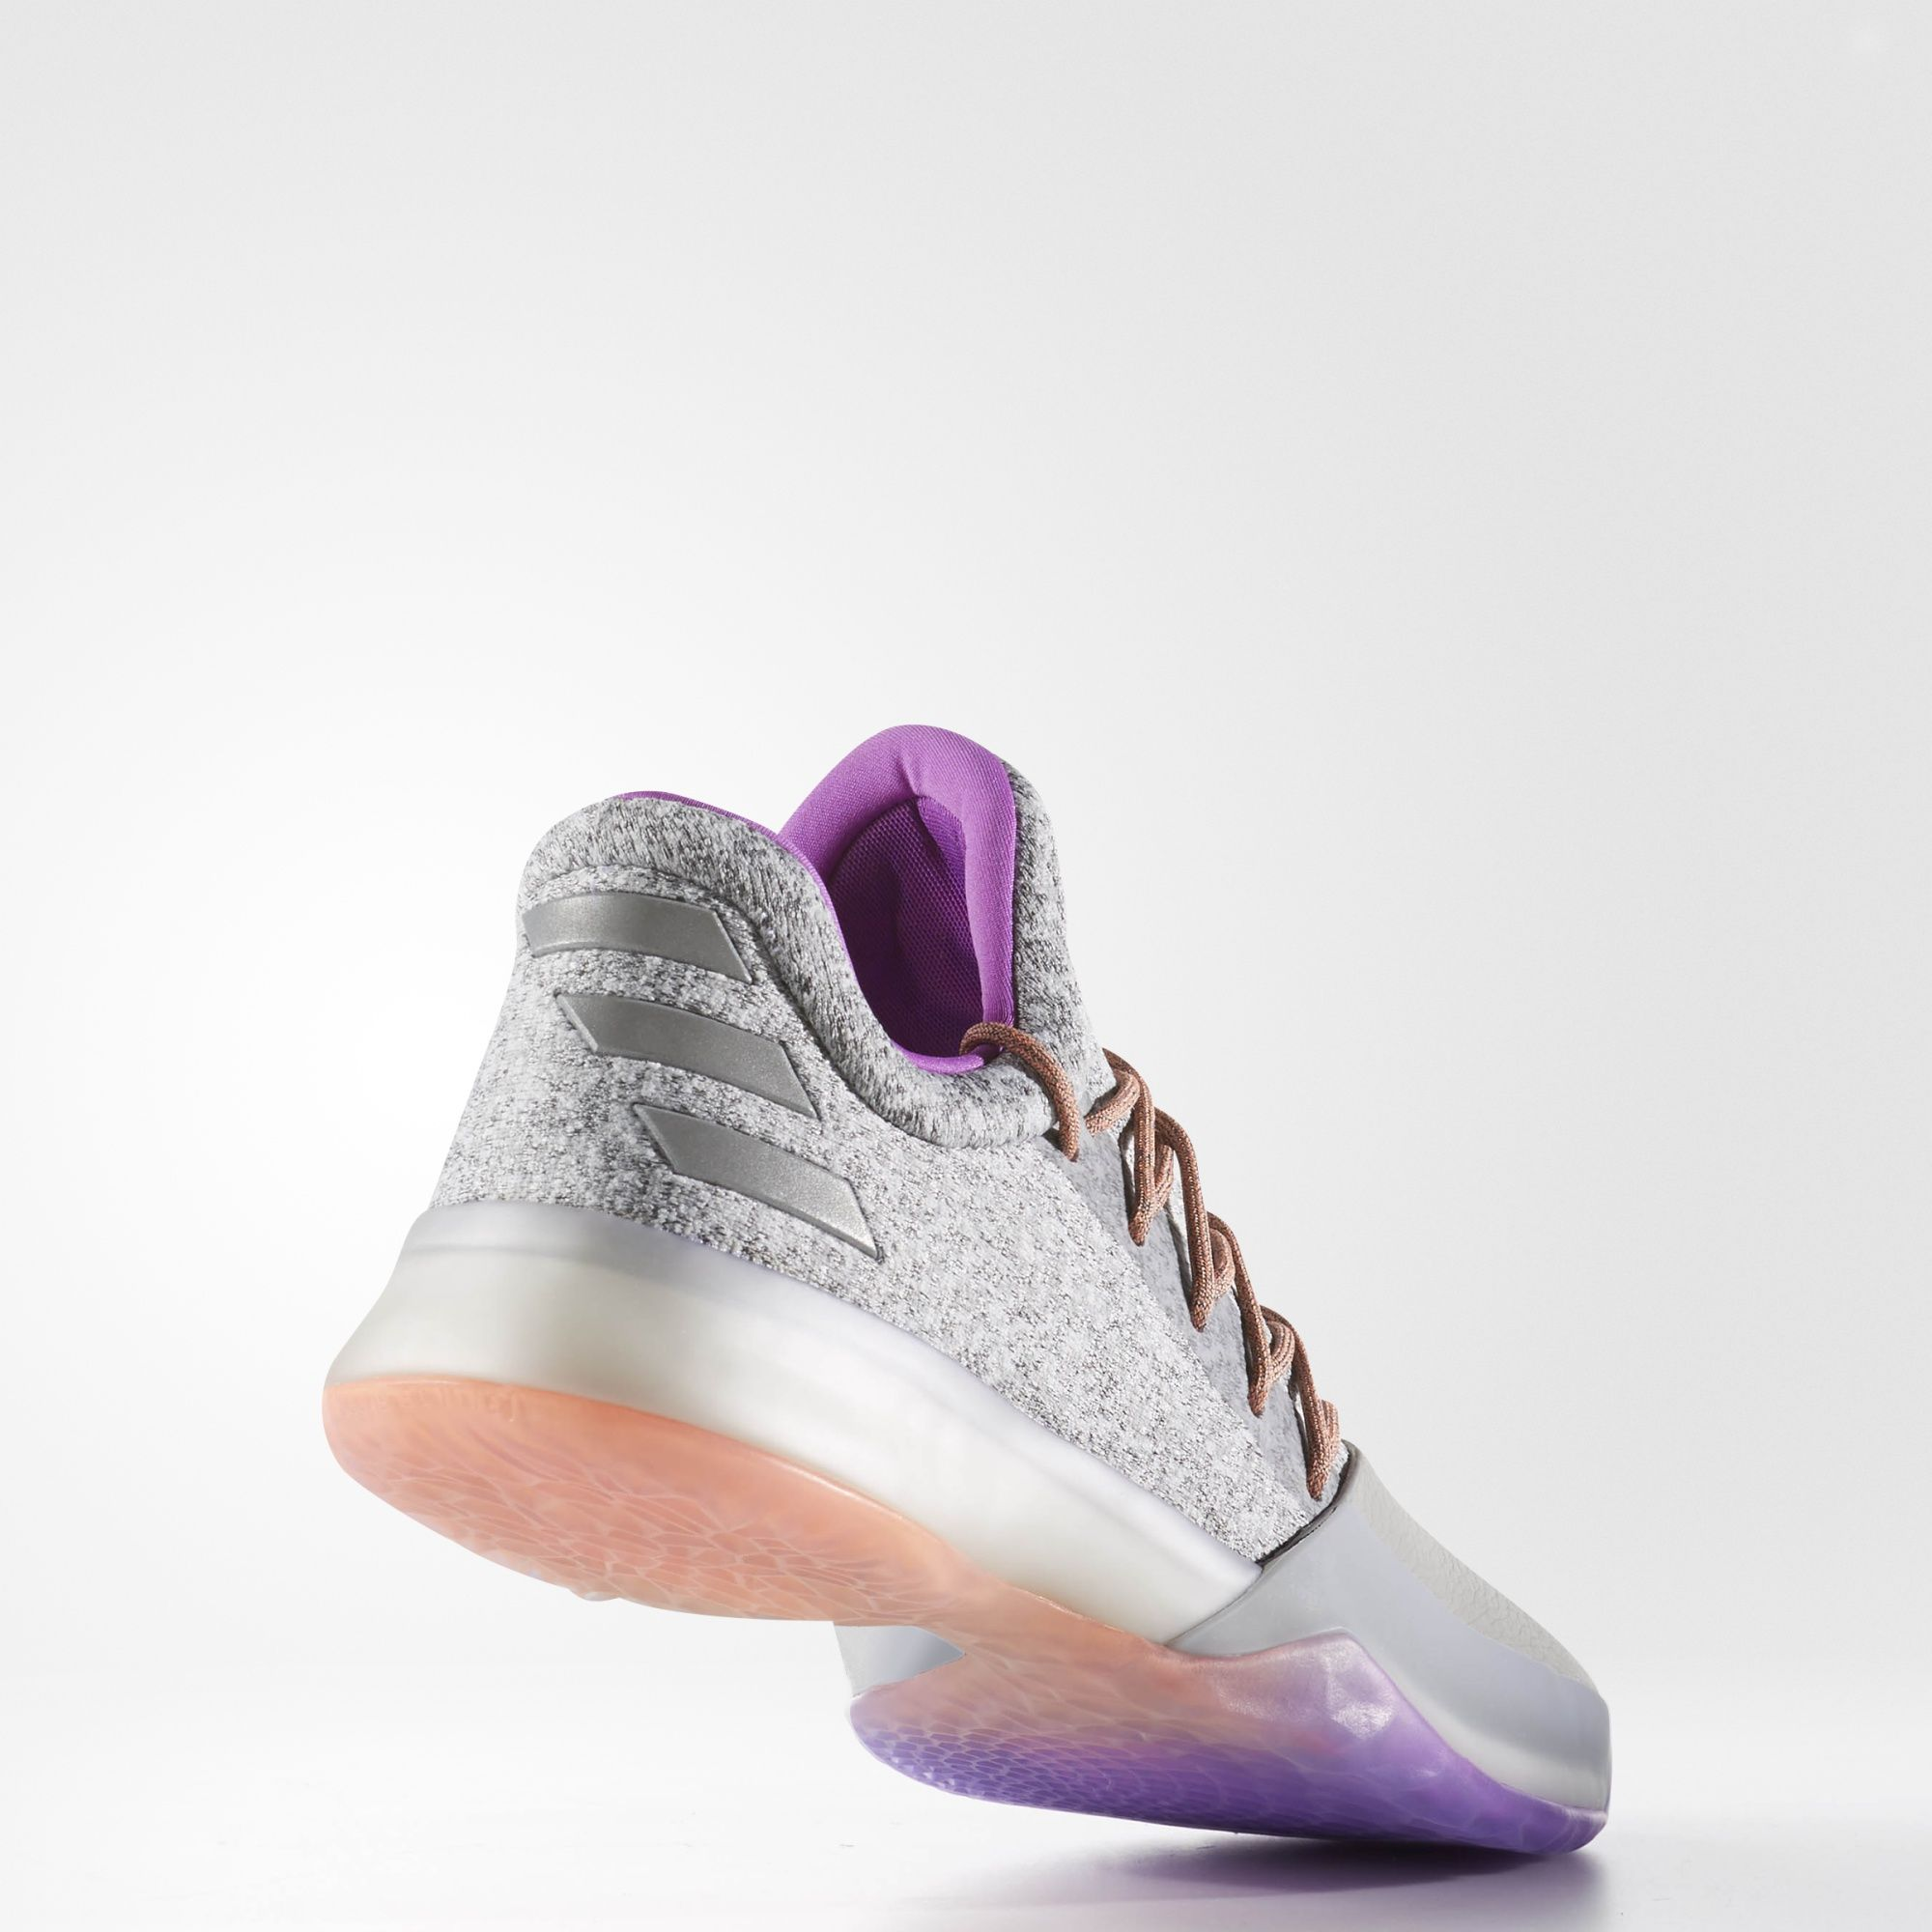 1 No Brakes is Available Now - WearTe Made In Japan New Adidas Harden Vol. 1  Mens Easter Purple Basketball ...